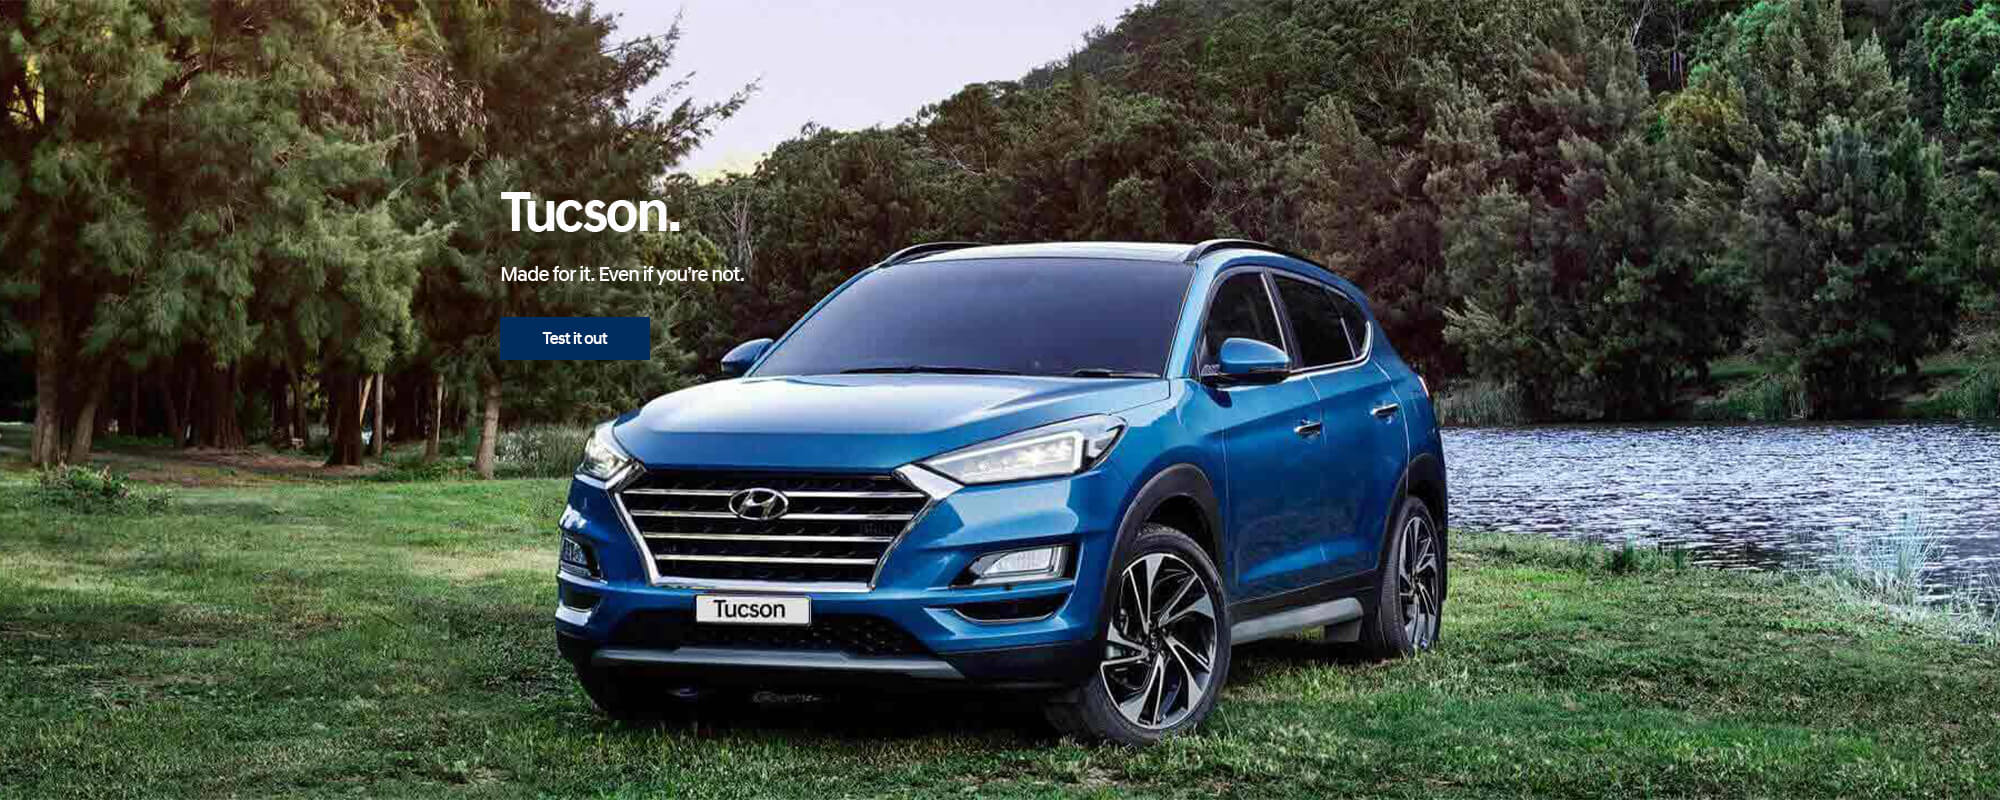 Hyundai Tucson. Made for it. Even if you're not. Book a test drive today.